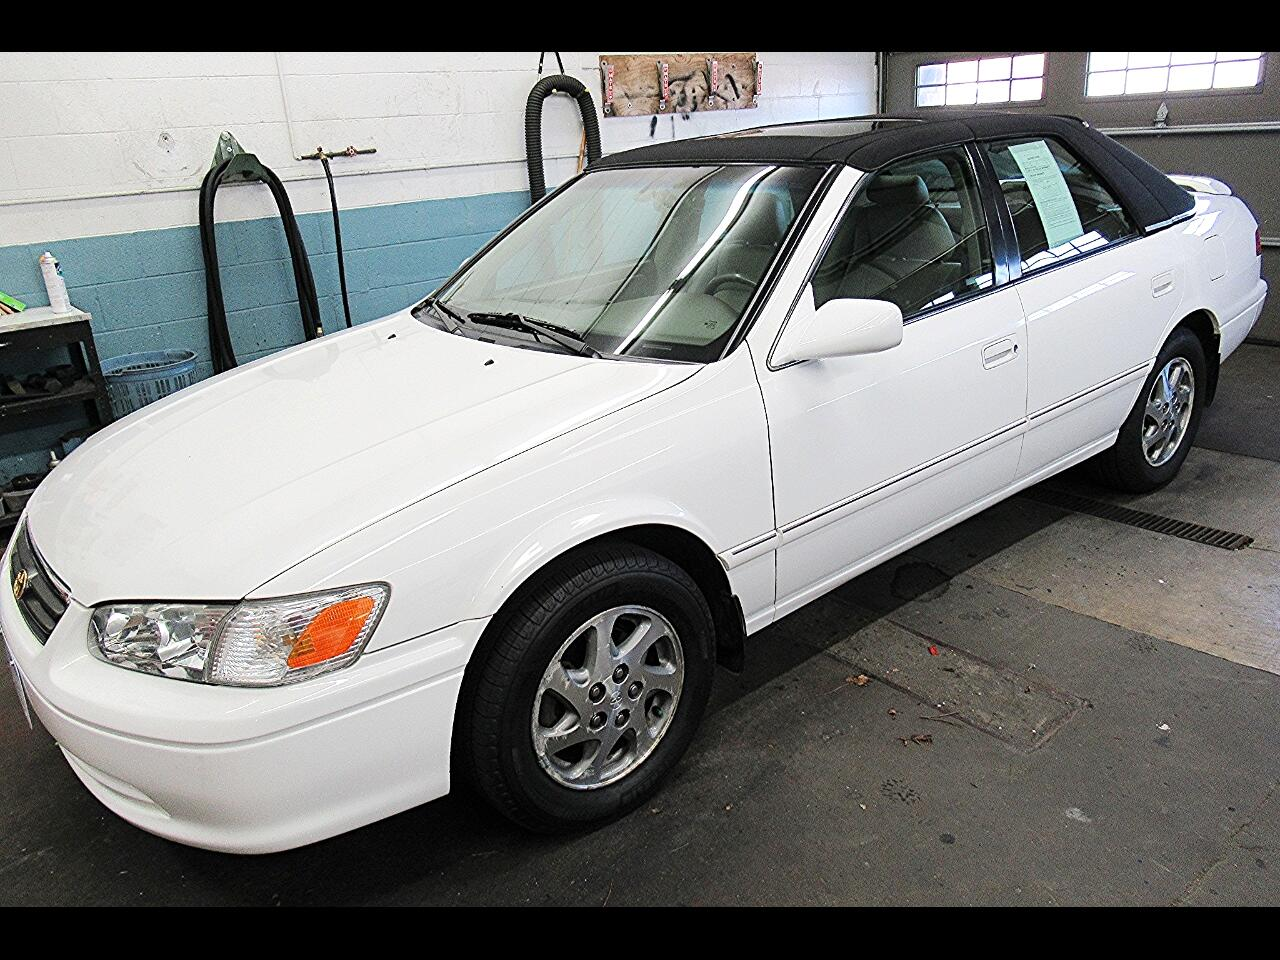 2001 Toyota Camry 4dr Sdn I4 Auto XLE (Natl)